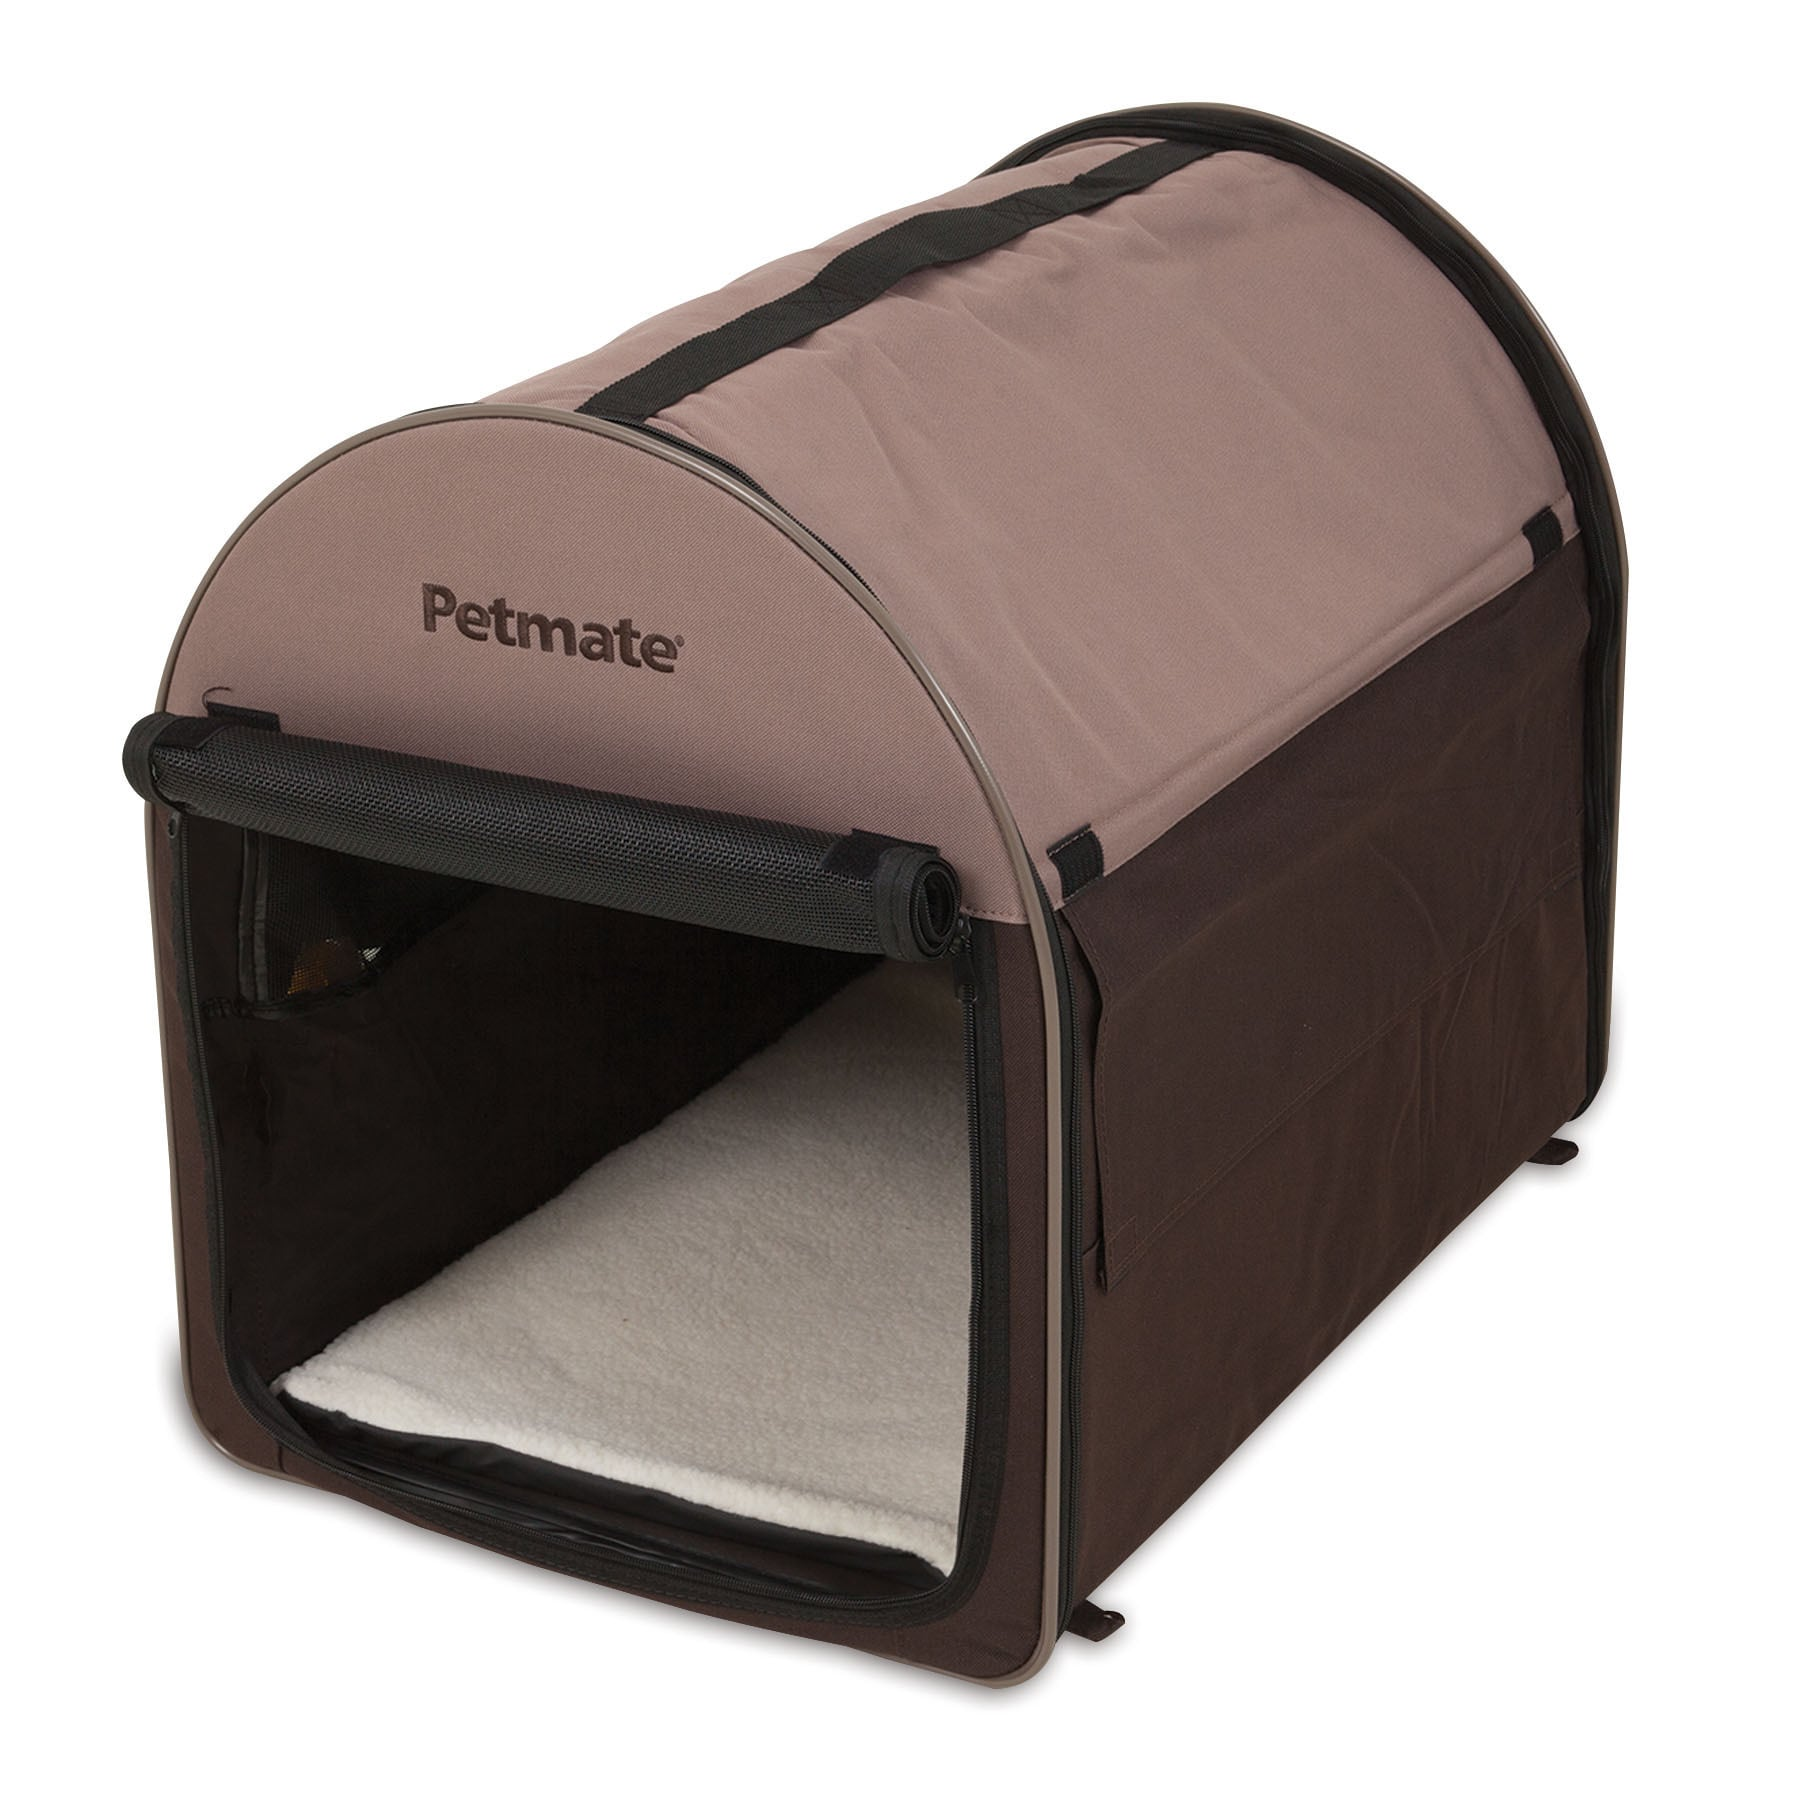 Petmate Portable Dog Kennel and Pet Bed (Large), Brown